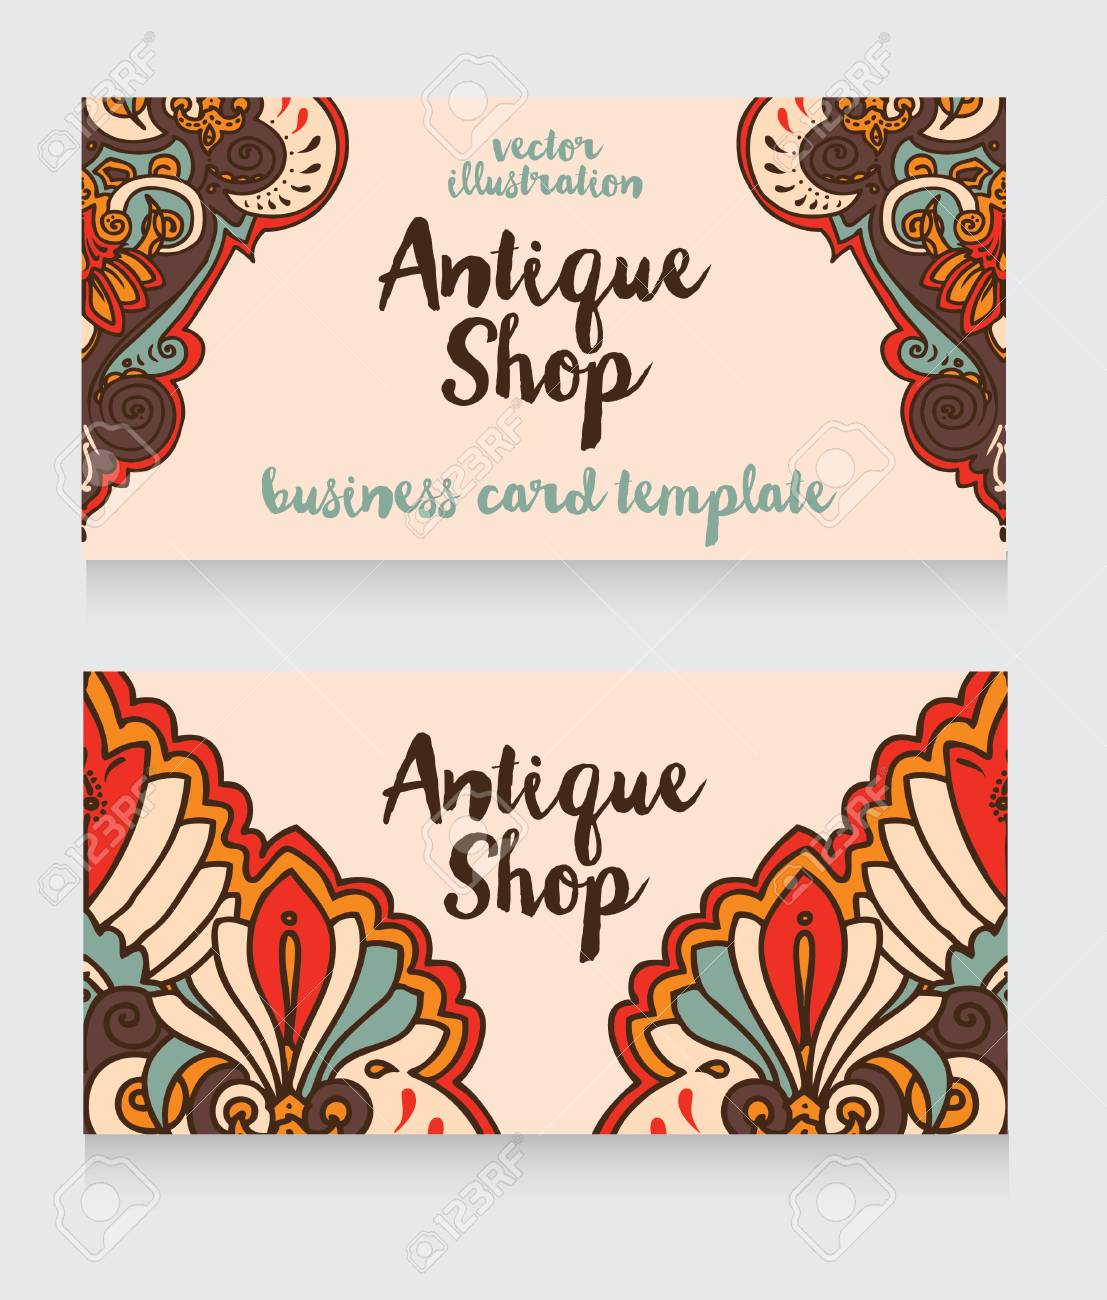 Business Cards Template For Antique Shop With Arabian Ornament ...